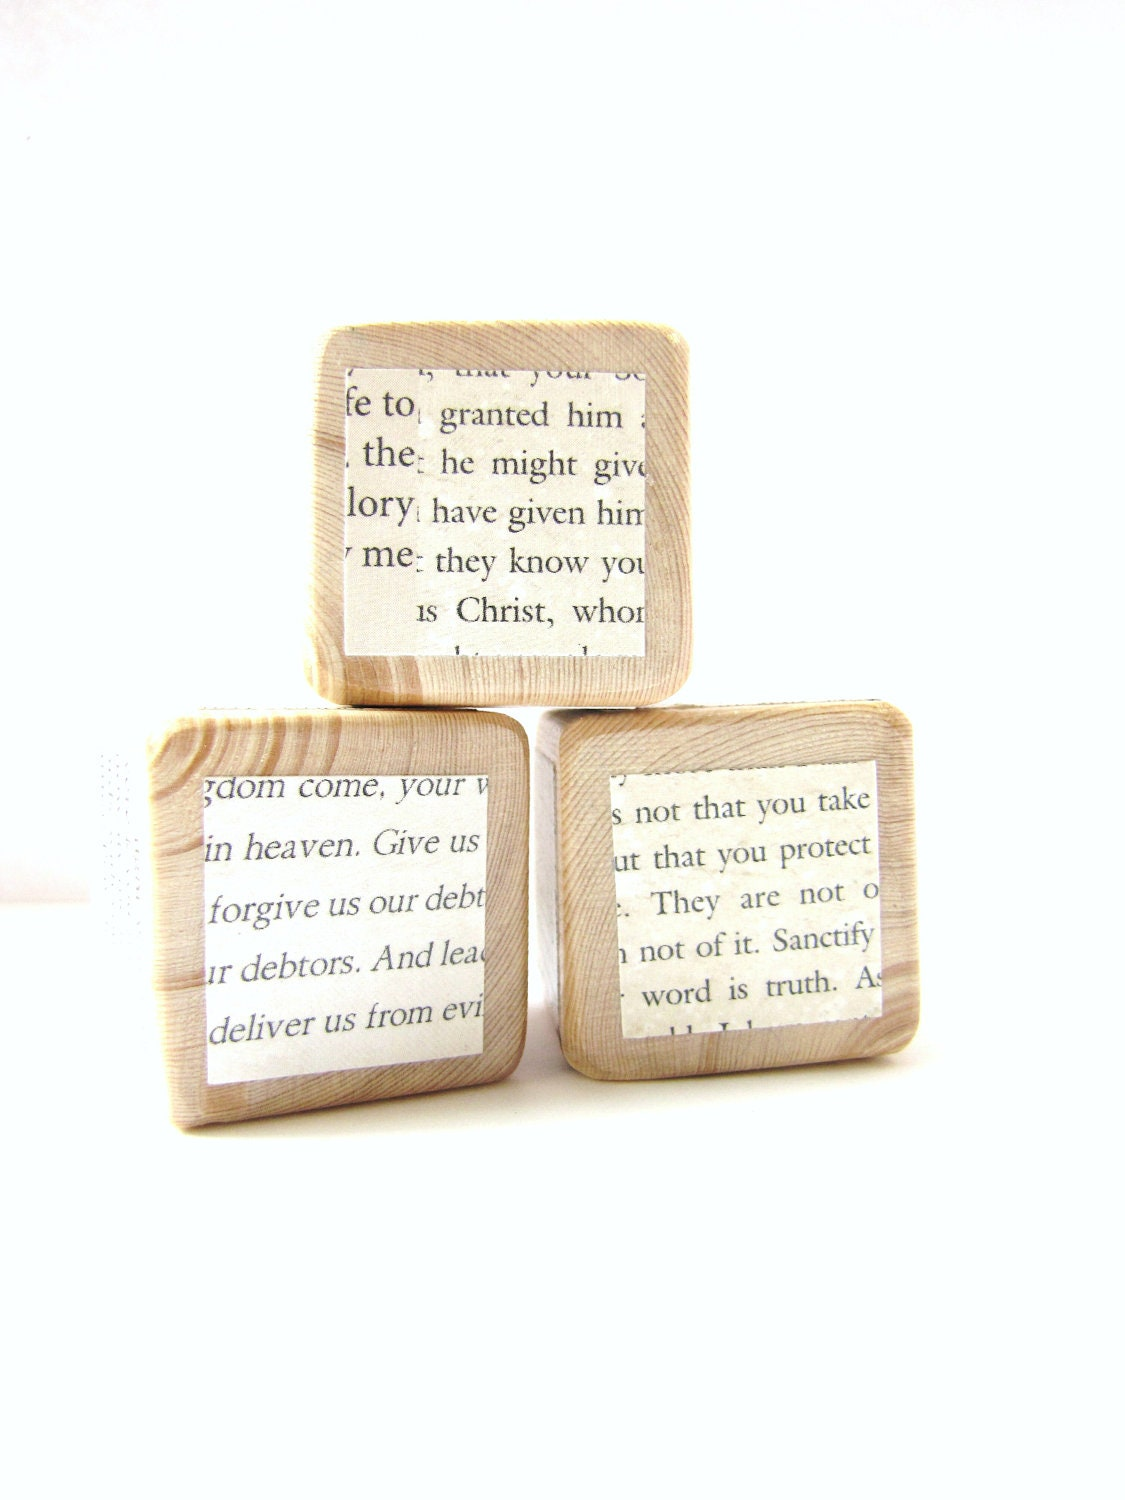 Christian Decoration. Bible verse. Wood blocks. Seasonal Decoration. Black and white. print. Words - MiaBooo